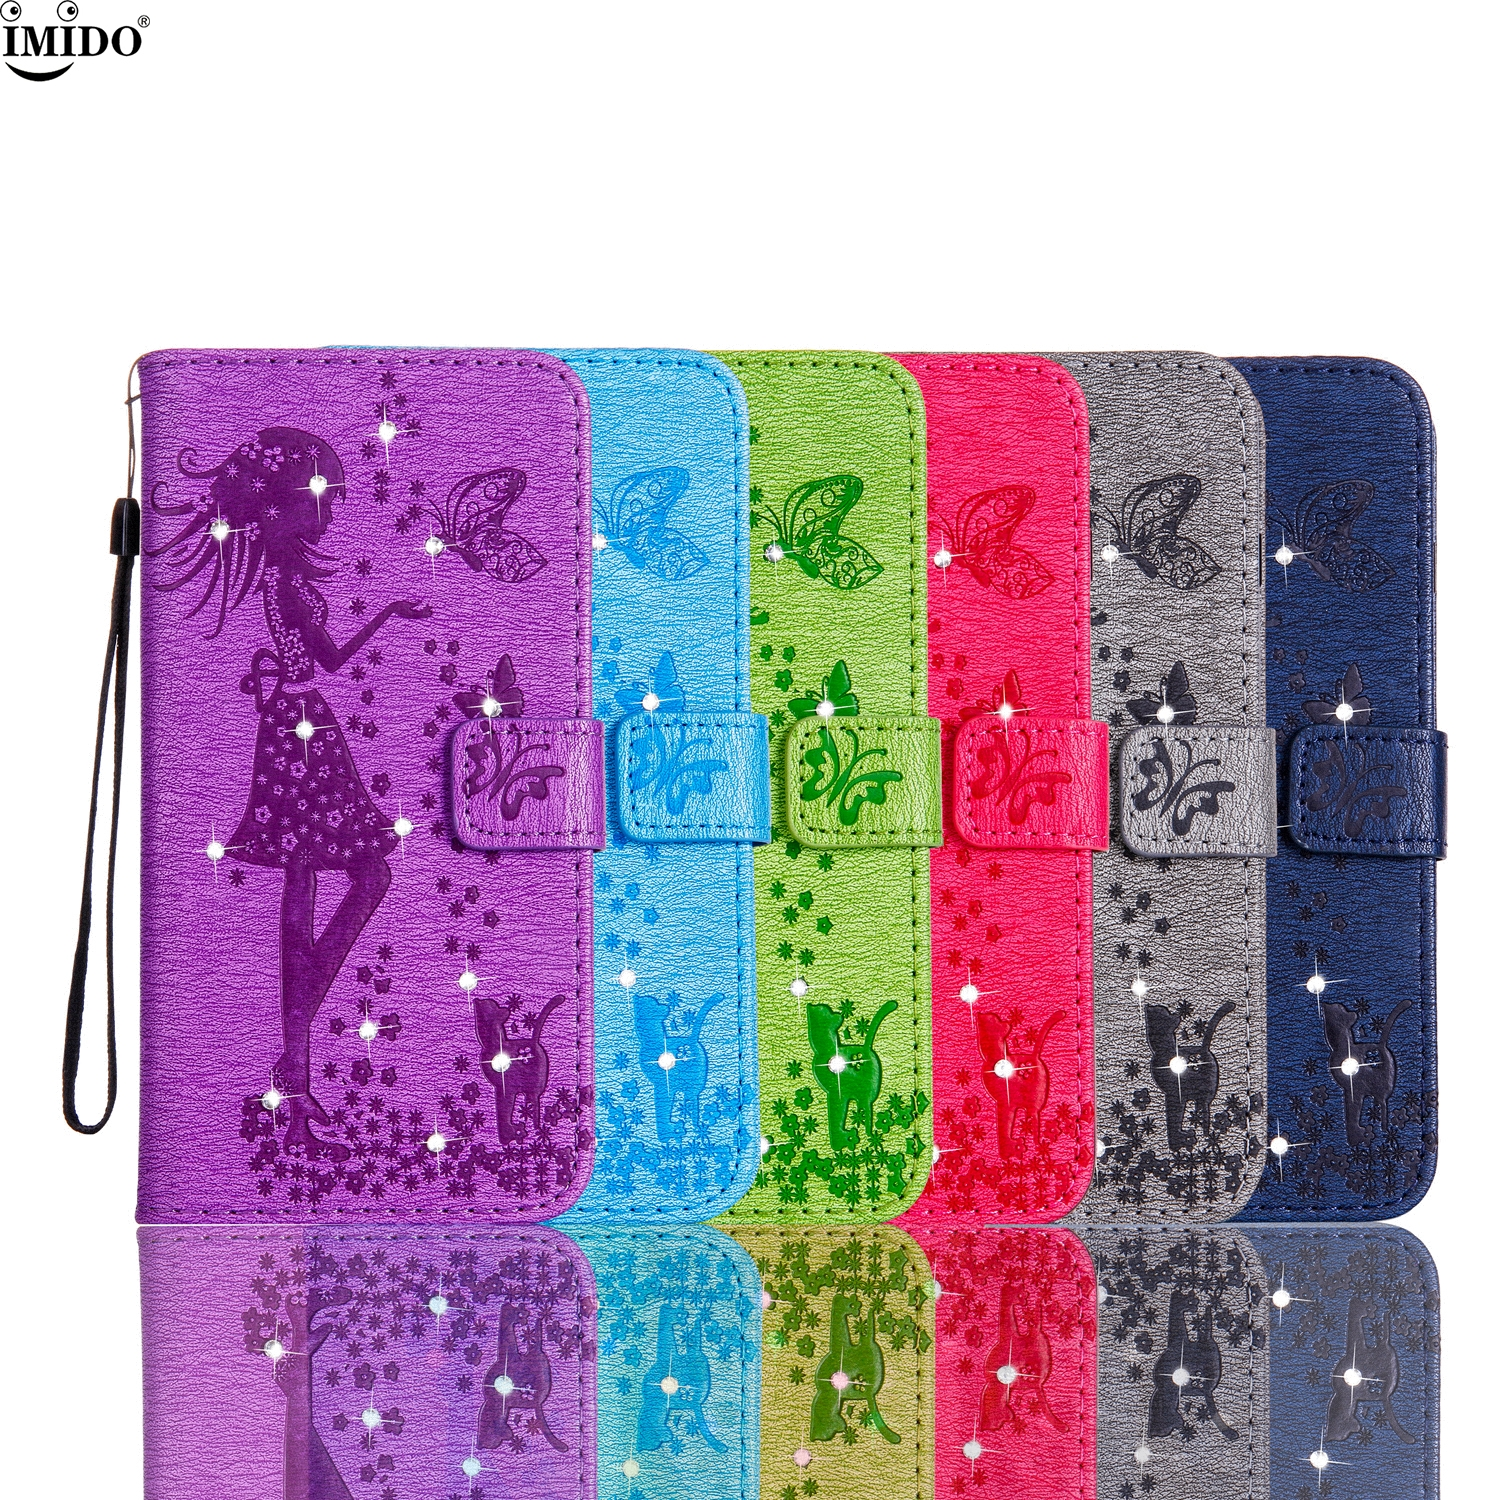 Honor 8 FRD-L09 case bag Honor 8 FRD-L19 Coque 5.2 honor8 box FRD-L02 PRA-TL10 Rhinestone Flip wallet Case for honor8 FRD-L04